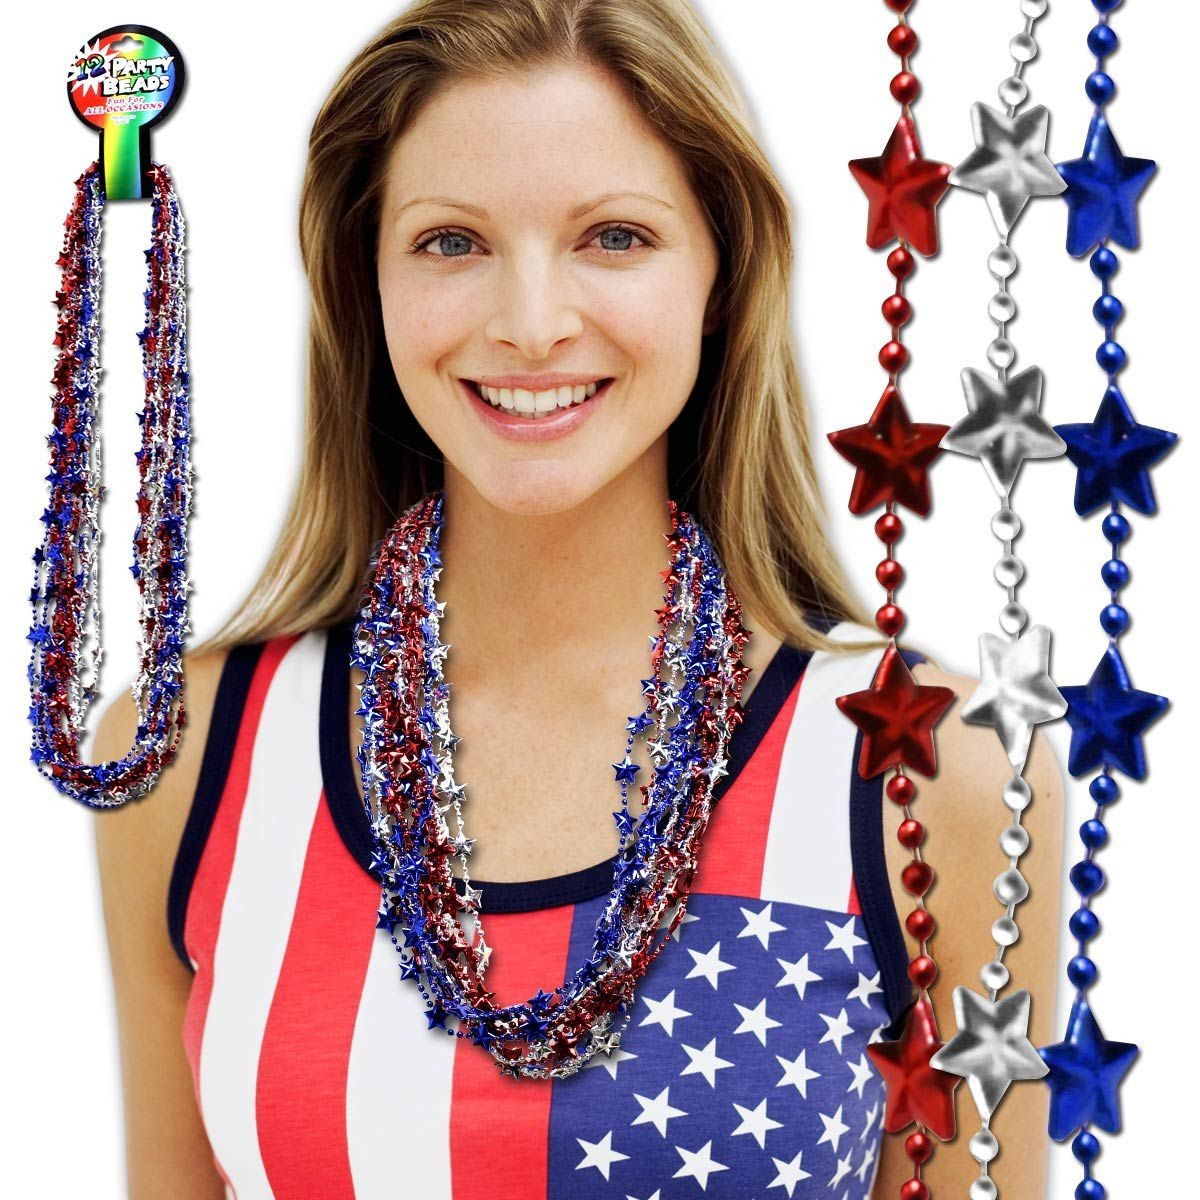 33 INCH RBSLVR STARS ASST BEADS NECKLACE